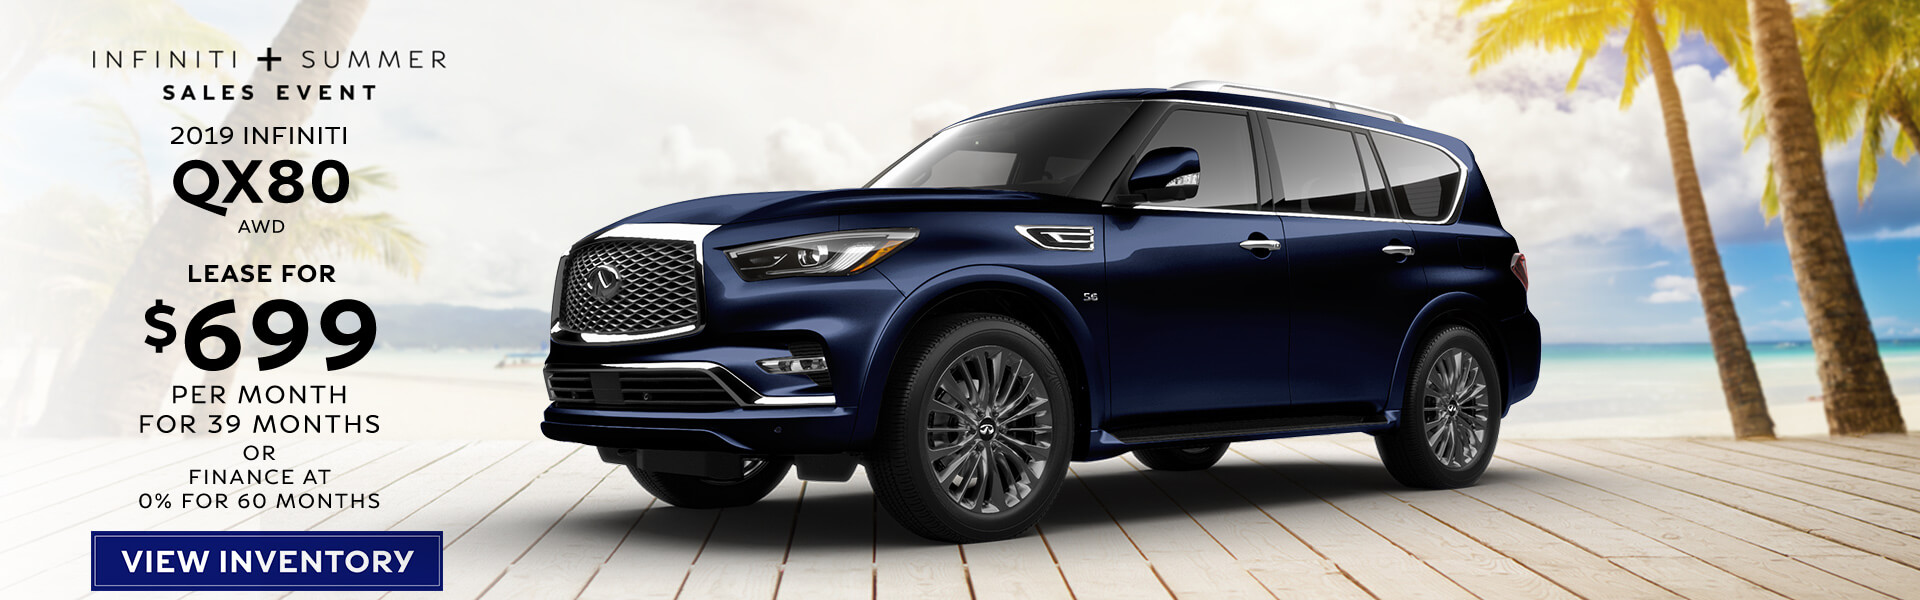 Infiniti Dealership Columbus Ohio >> Airport Infiniti New Used Car Dealer Near Westlake Parma Oh